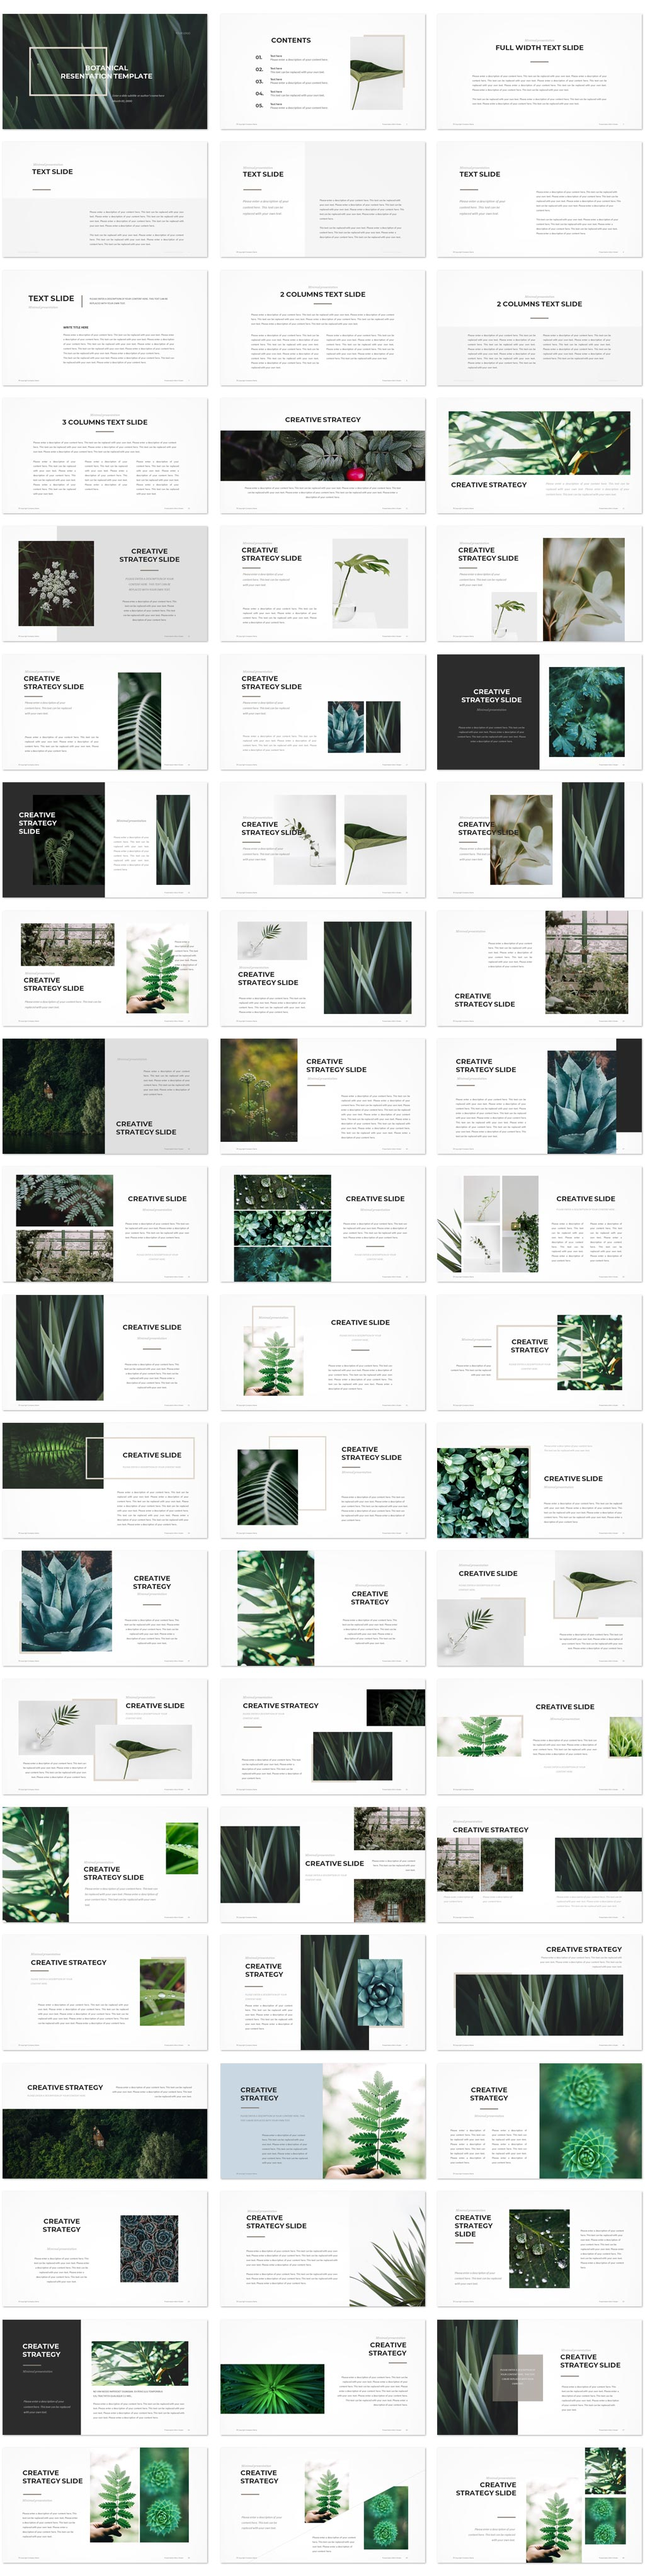 Botanical PowerPoint Template